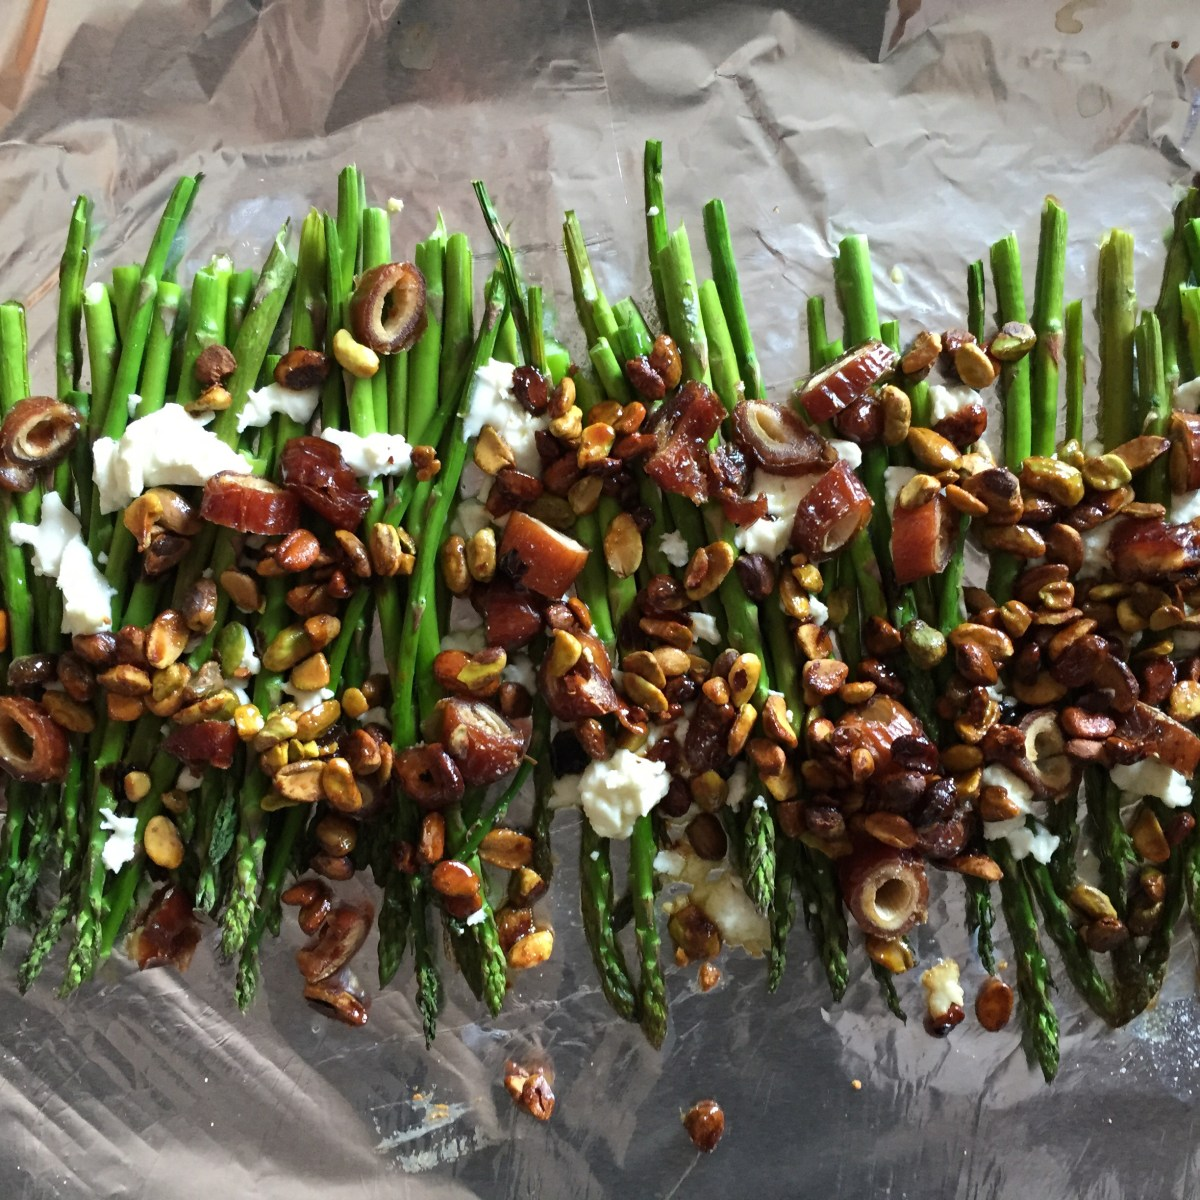 Honey Roasted Pistachios over Asparagus with Goat Cheese and Dates